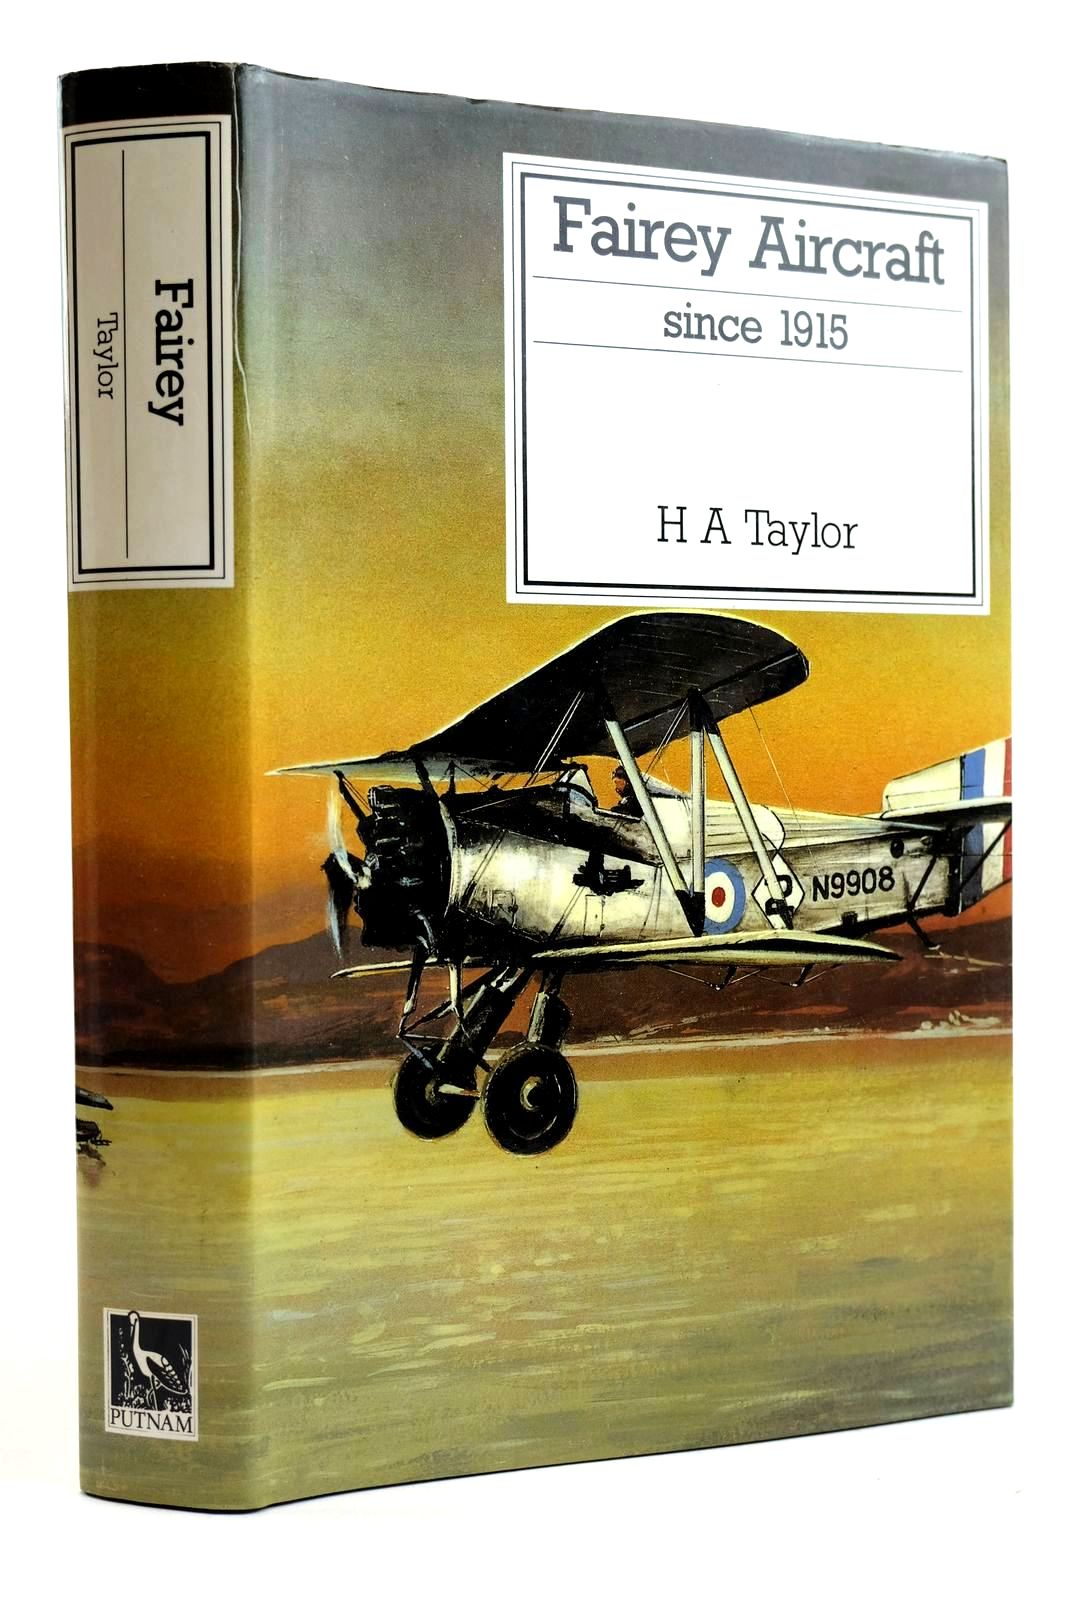 Photo of FAIREY AIRCRAFT SINCE 1915 written by Taylor, H.A. published by Putnam (STOCK CODE: 2132079)  for sale by Stella & Rose's Books